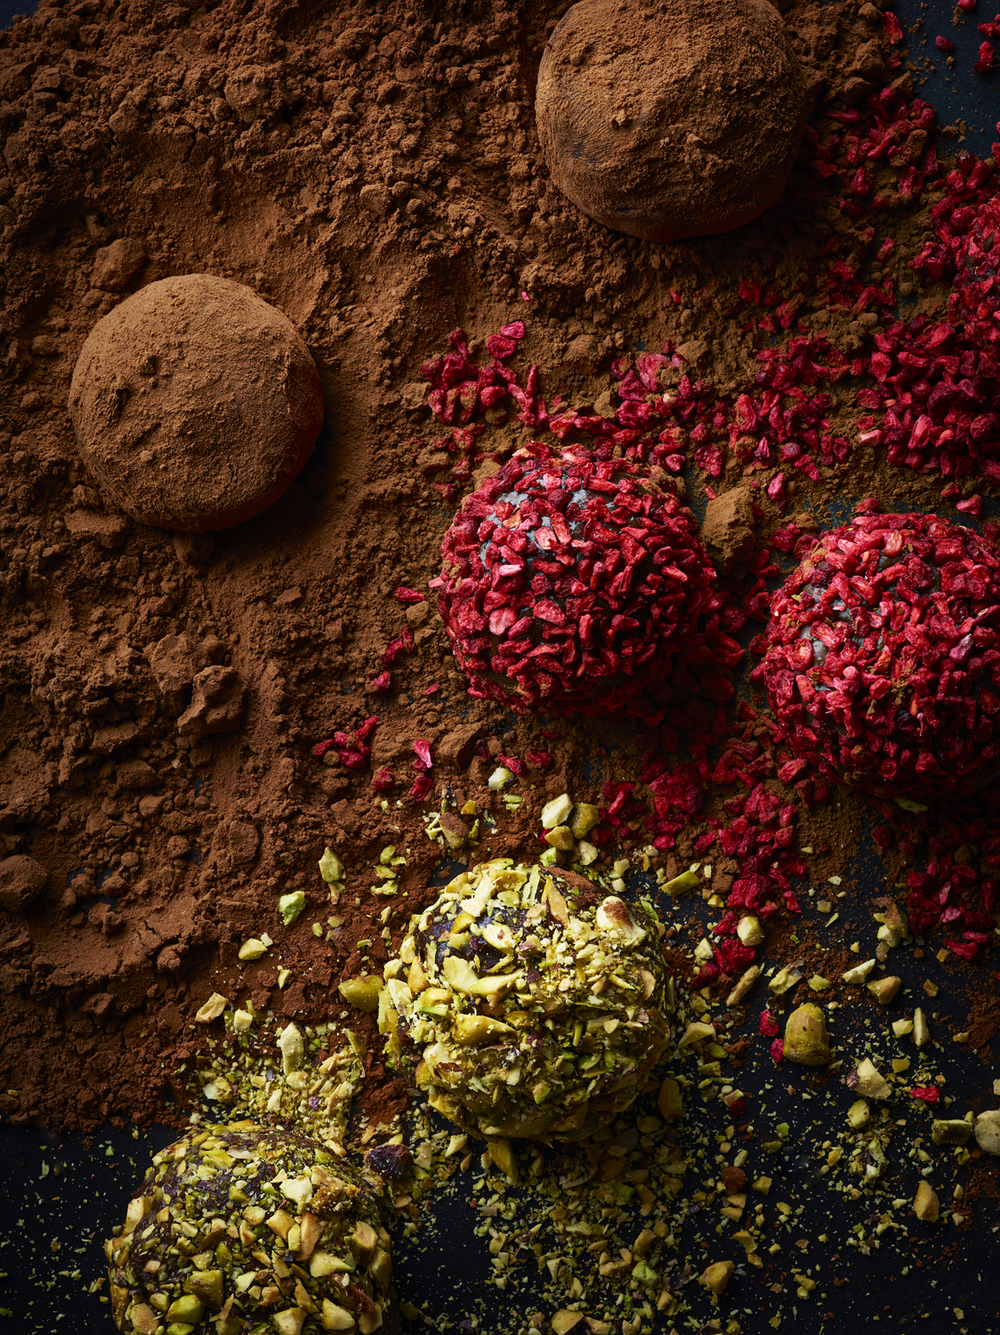 Food and drink photographer and tabletop director Scott Grummett based in London. Shooting Advertising, editorial, packaging, pr and more. Shown here is food photography from food photographer and director Scott Grummett of   chocolate, cocoa, raspberry, fondue dip melted gloss, cocoa powder, truffle truffles pistachio raspberry